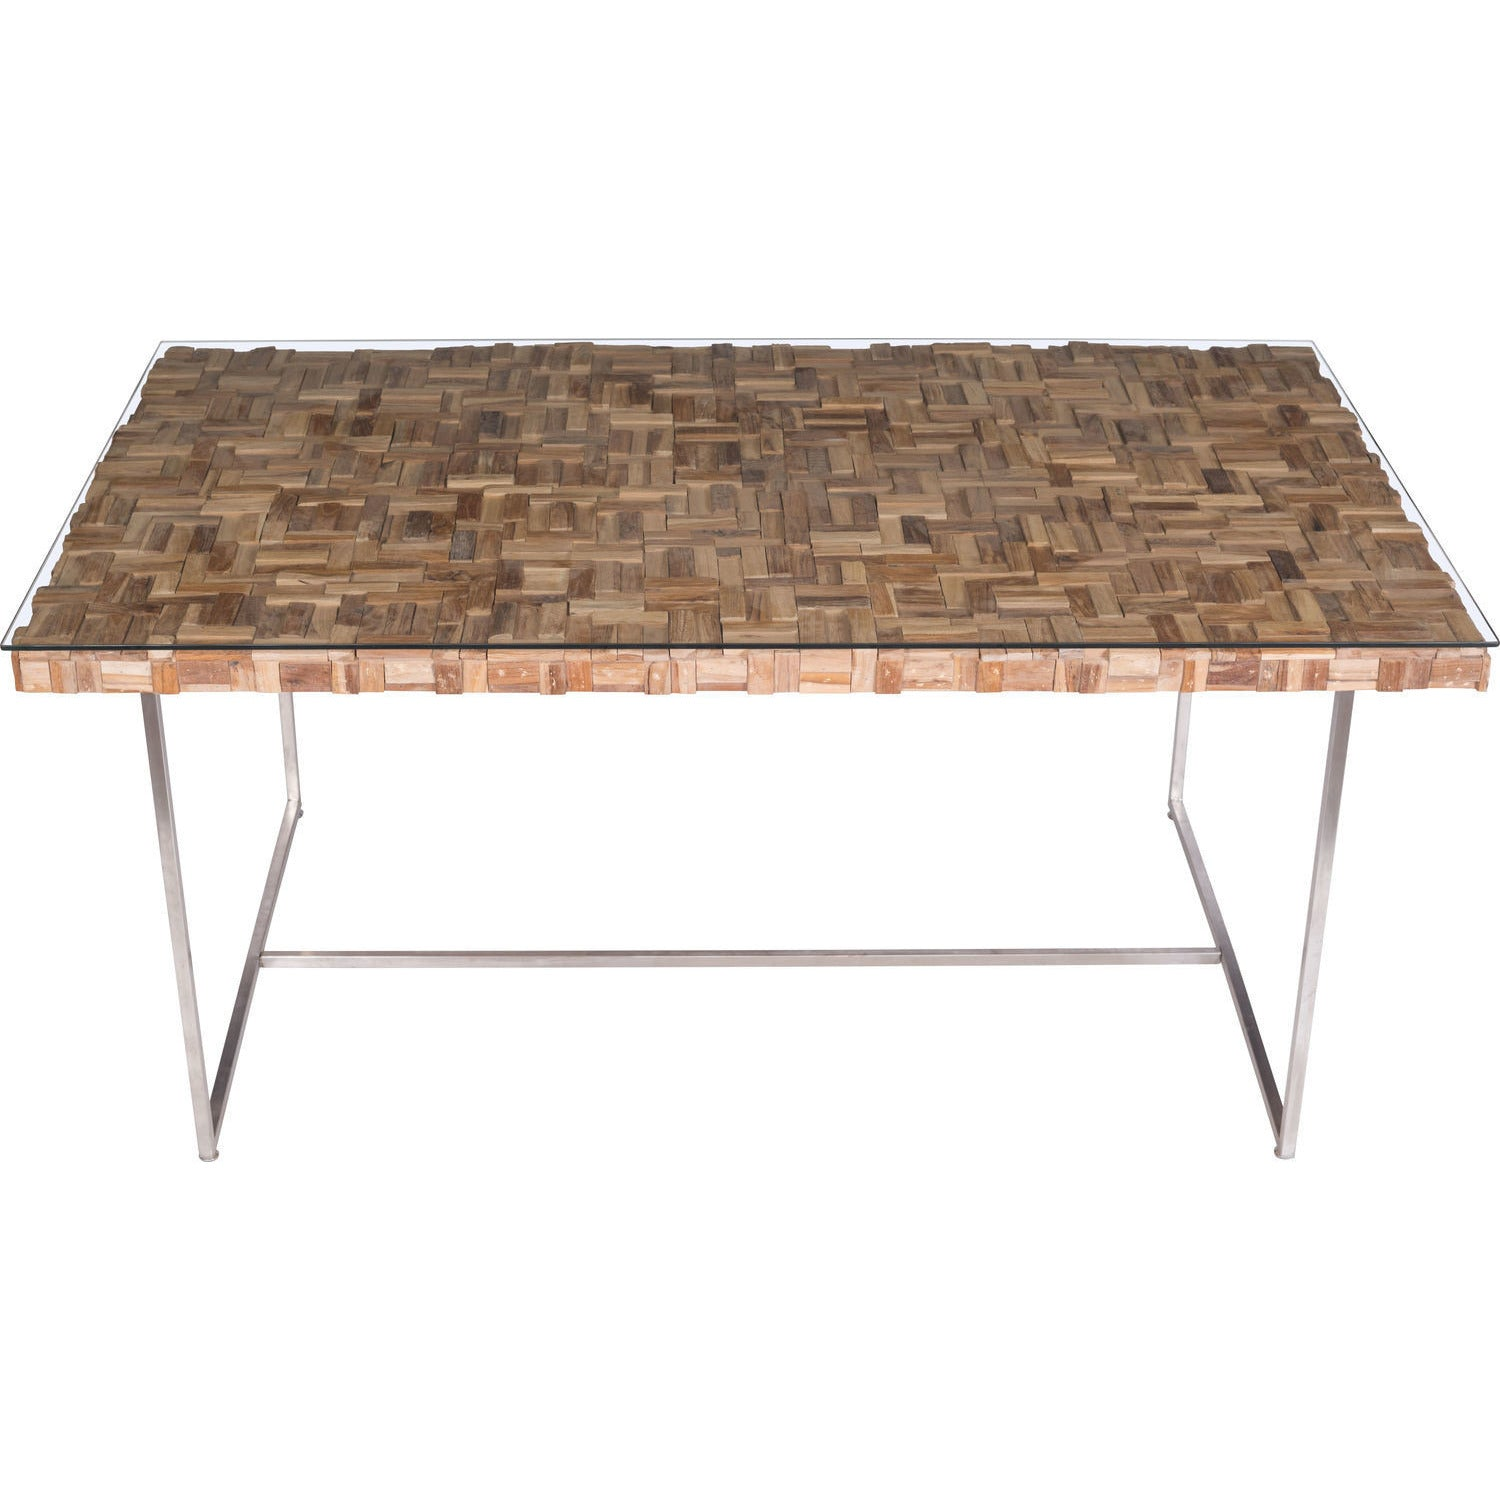 Reclaimed Teak Dining Table Zuo Modern Collage Dining Table Reclaimed Teak Natural 100260